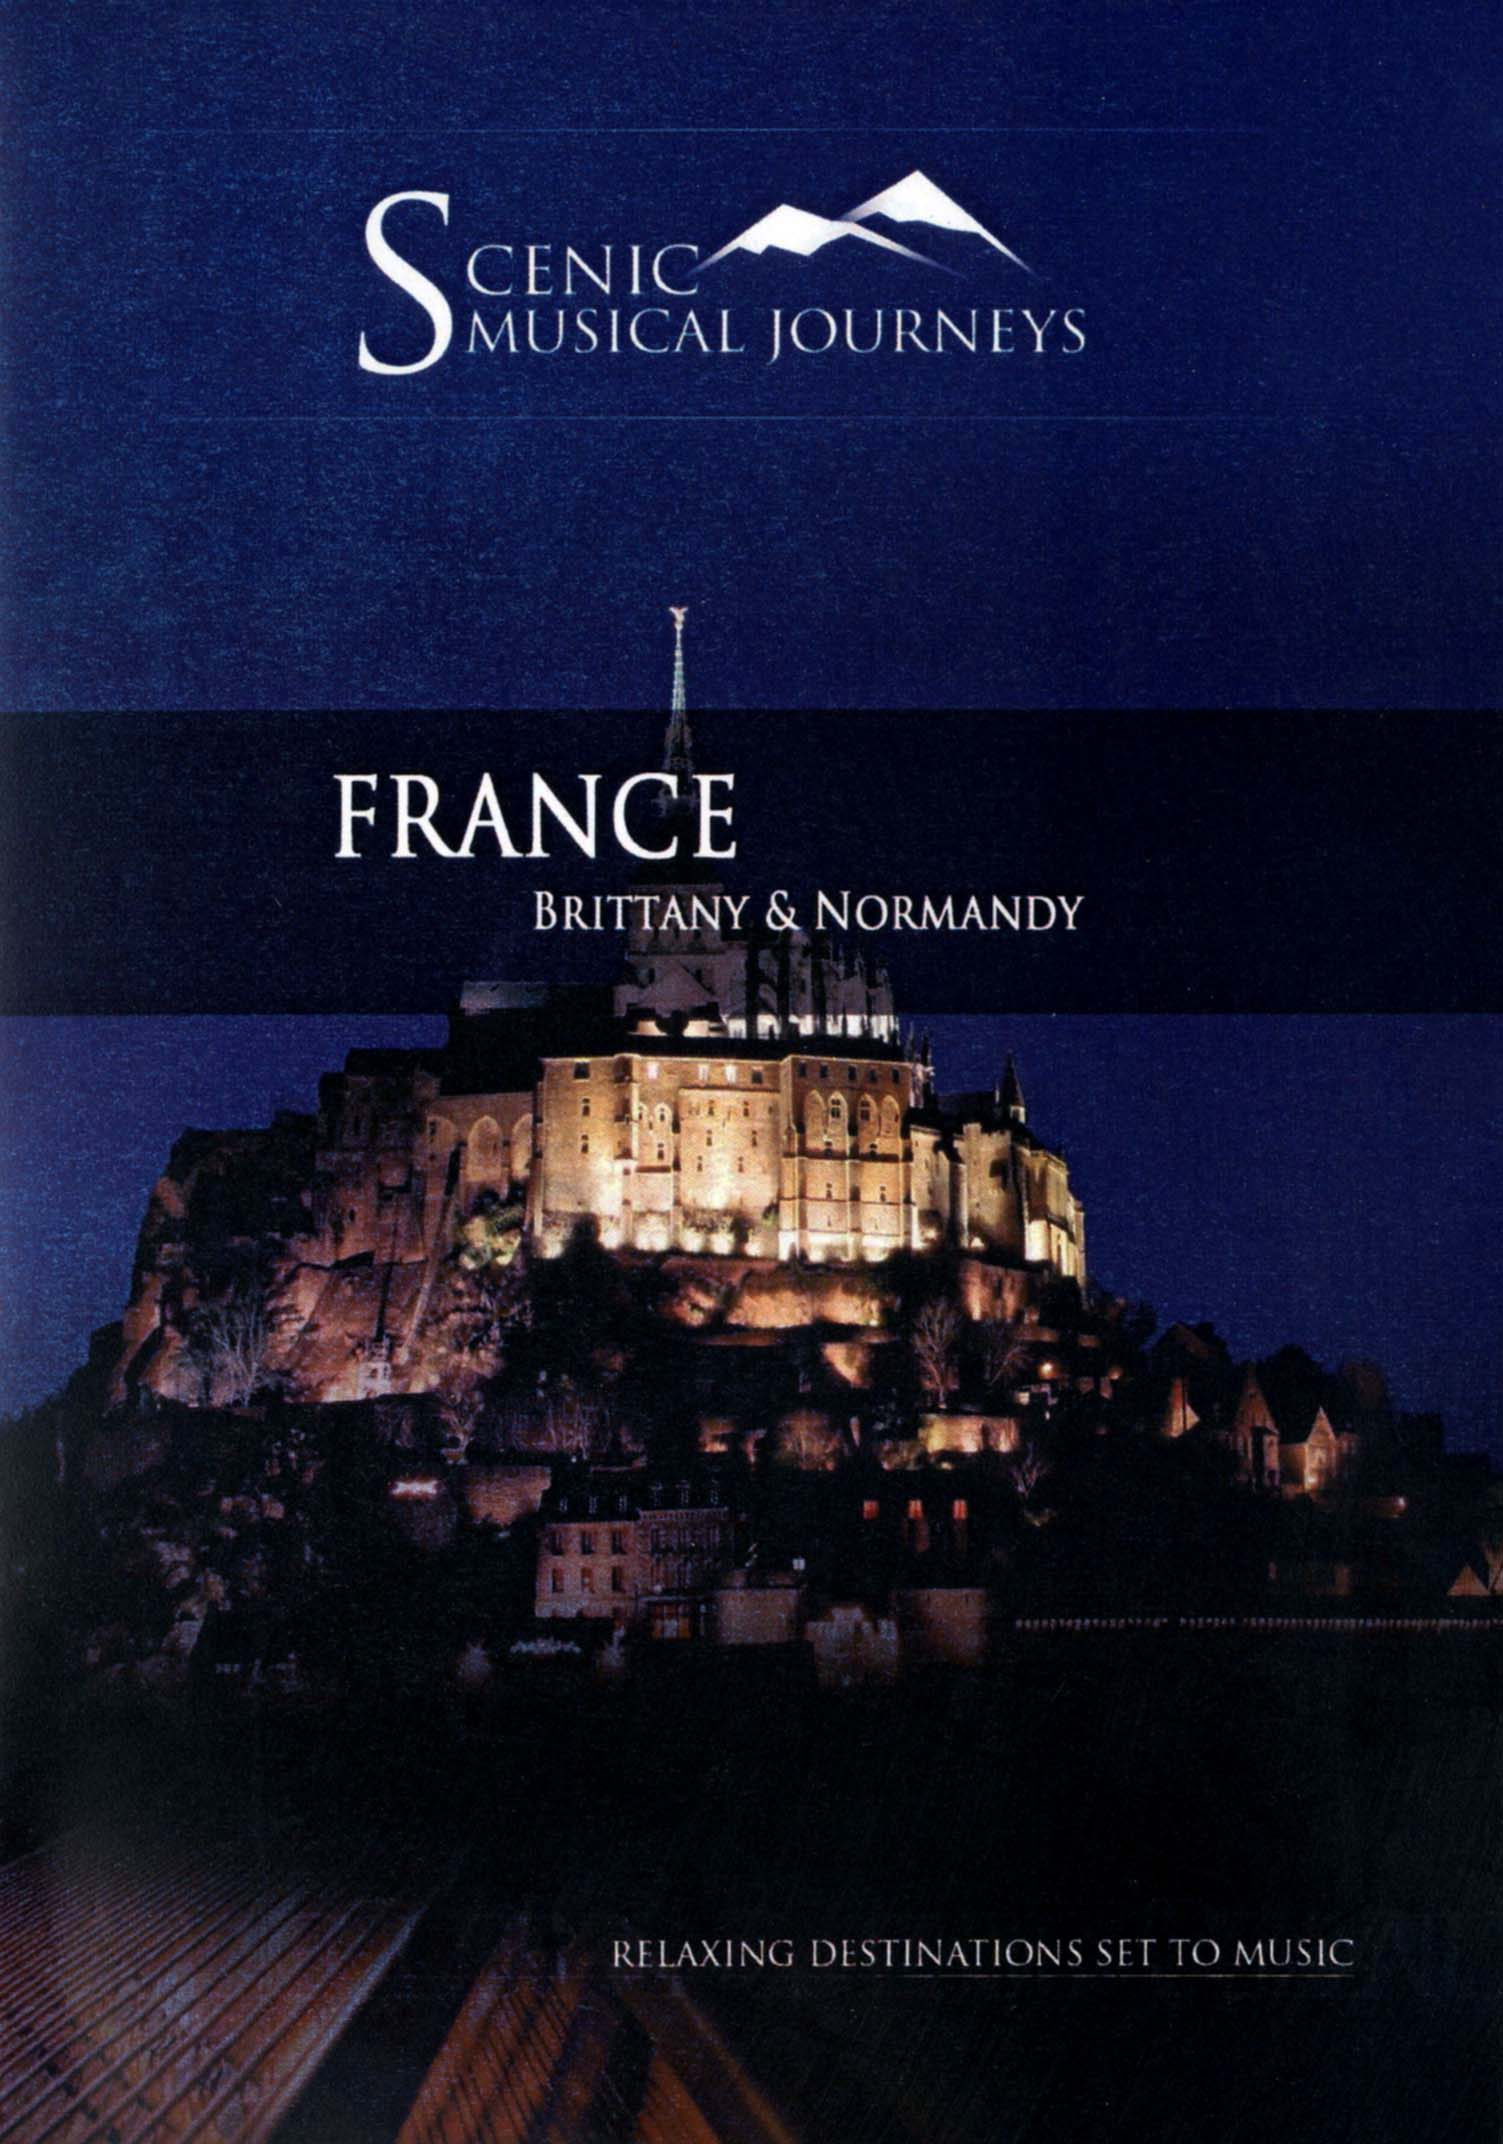 Scenic Musical Journeys: France - Brittany & Normandy